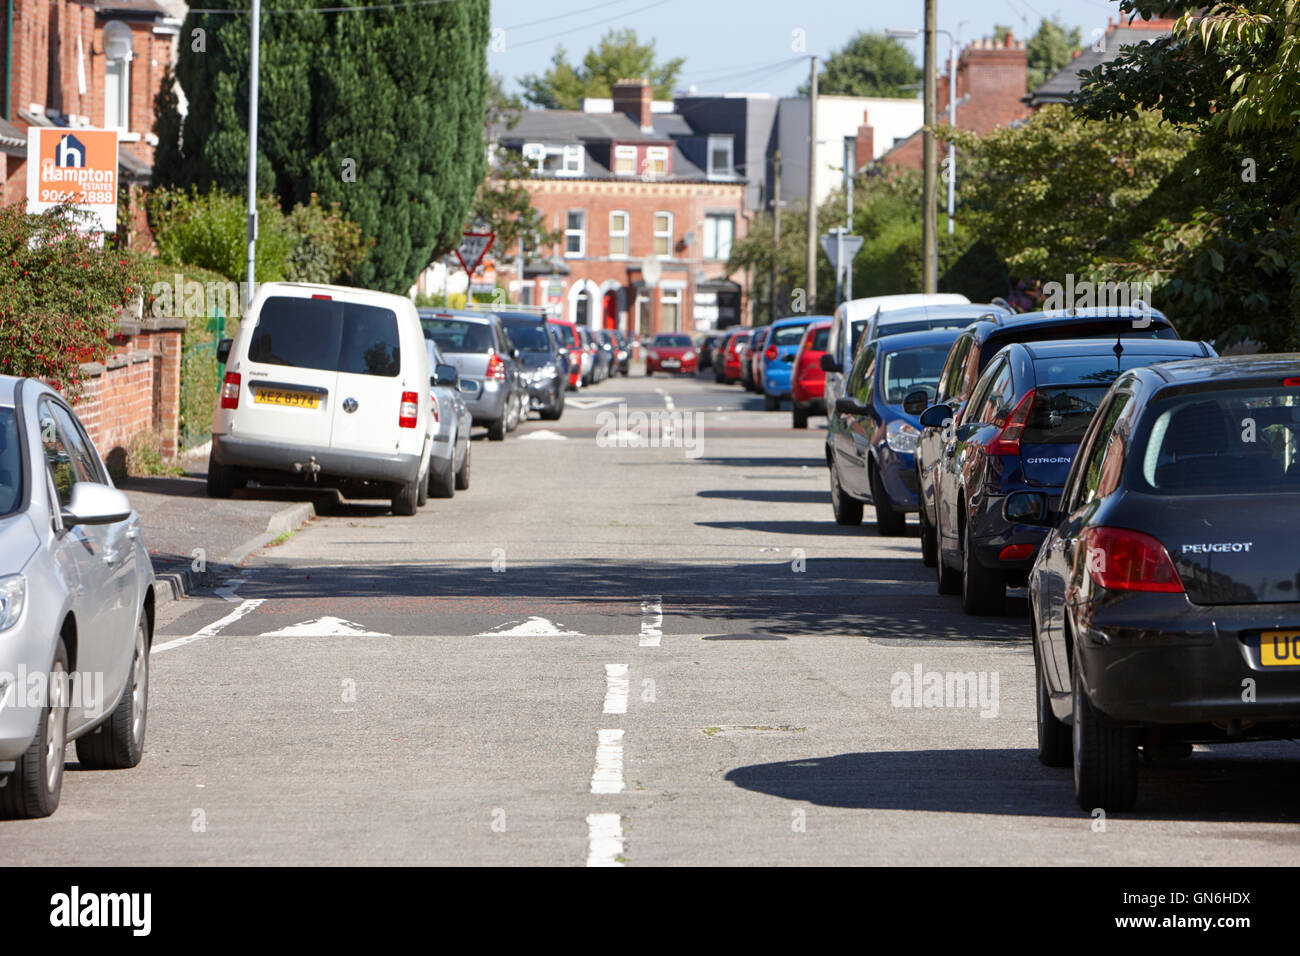 onstreet parking with speed bumps in a residential street in south belfast uk - Stock Image